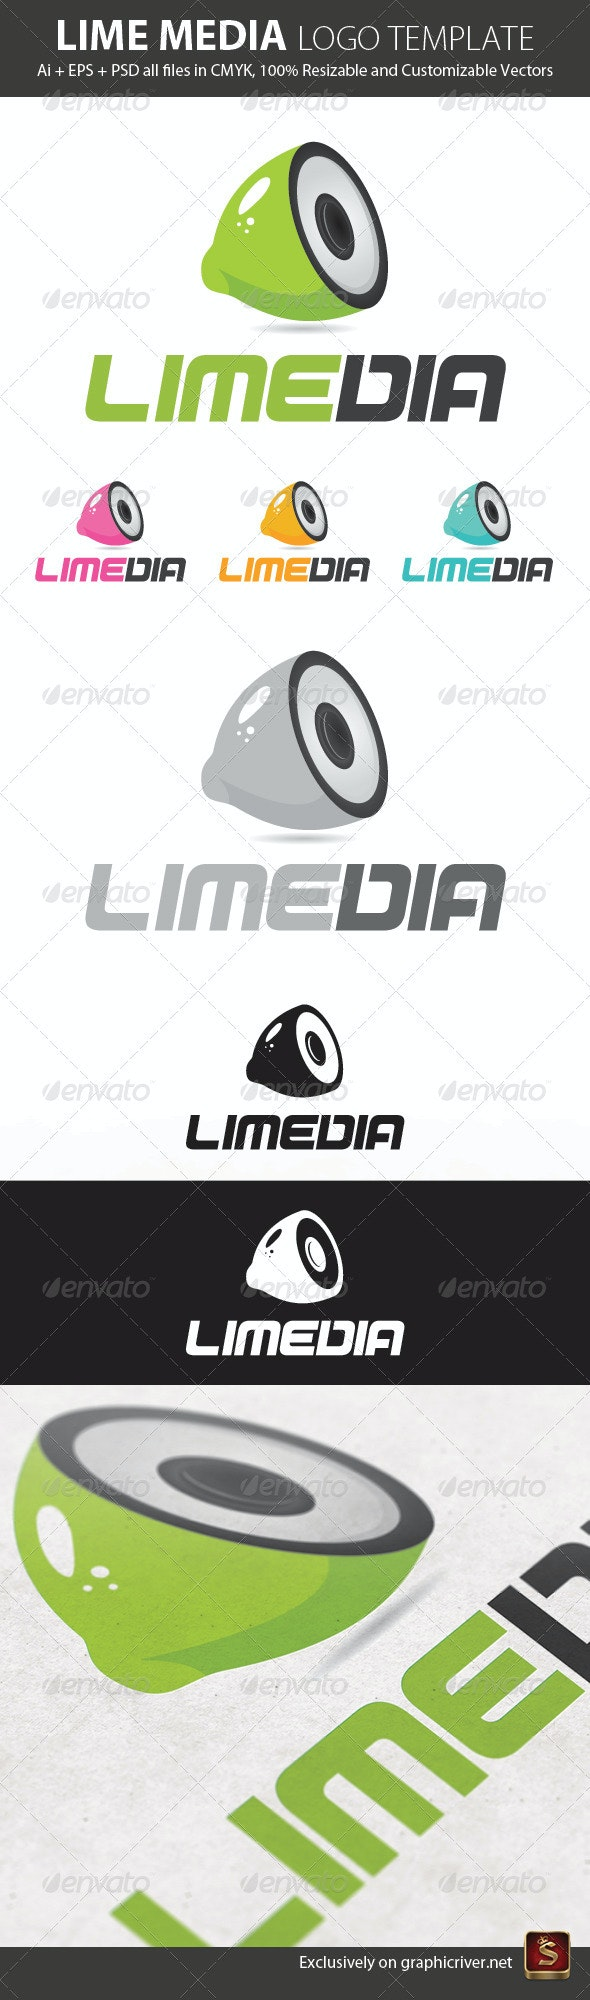 Lime Media Logo Template - Objects Logo Templates